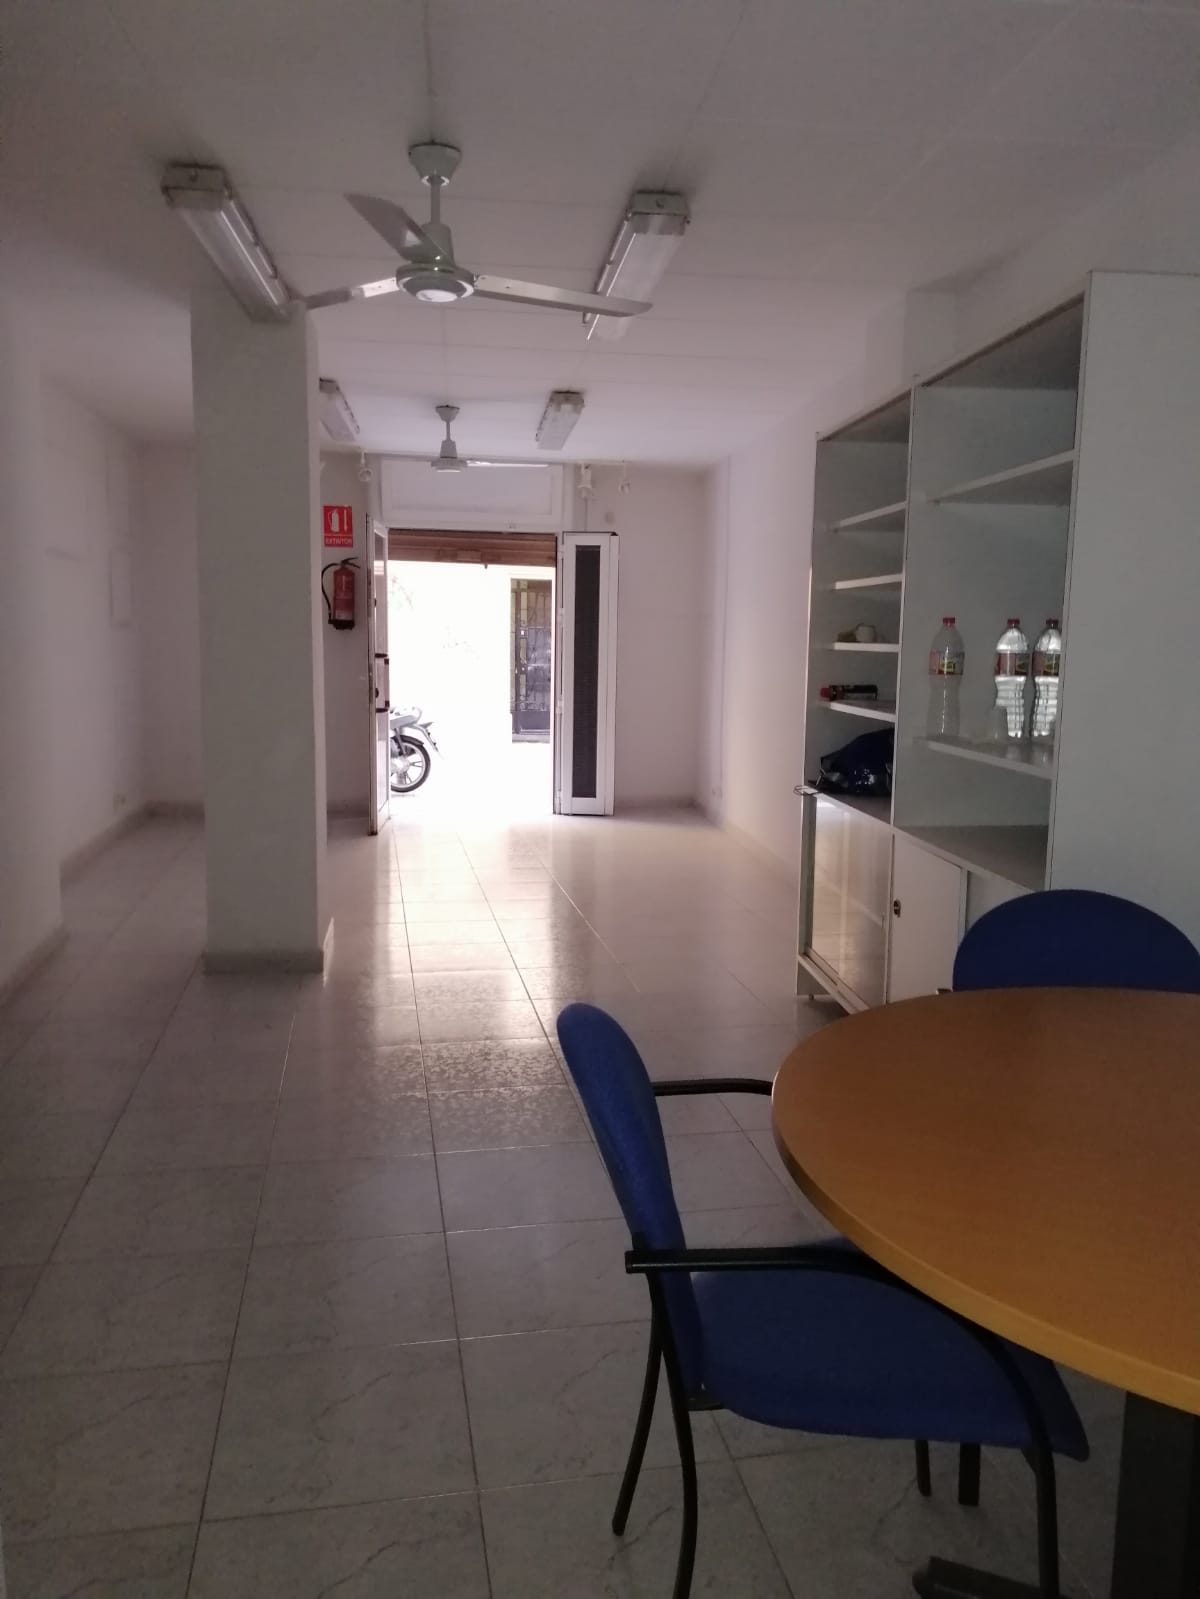 (Español) Local de 40m2 en Hospitalet